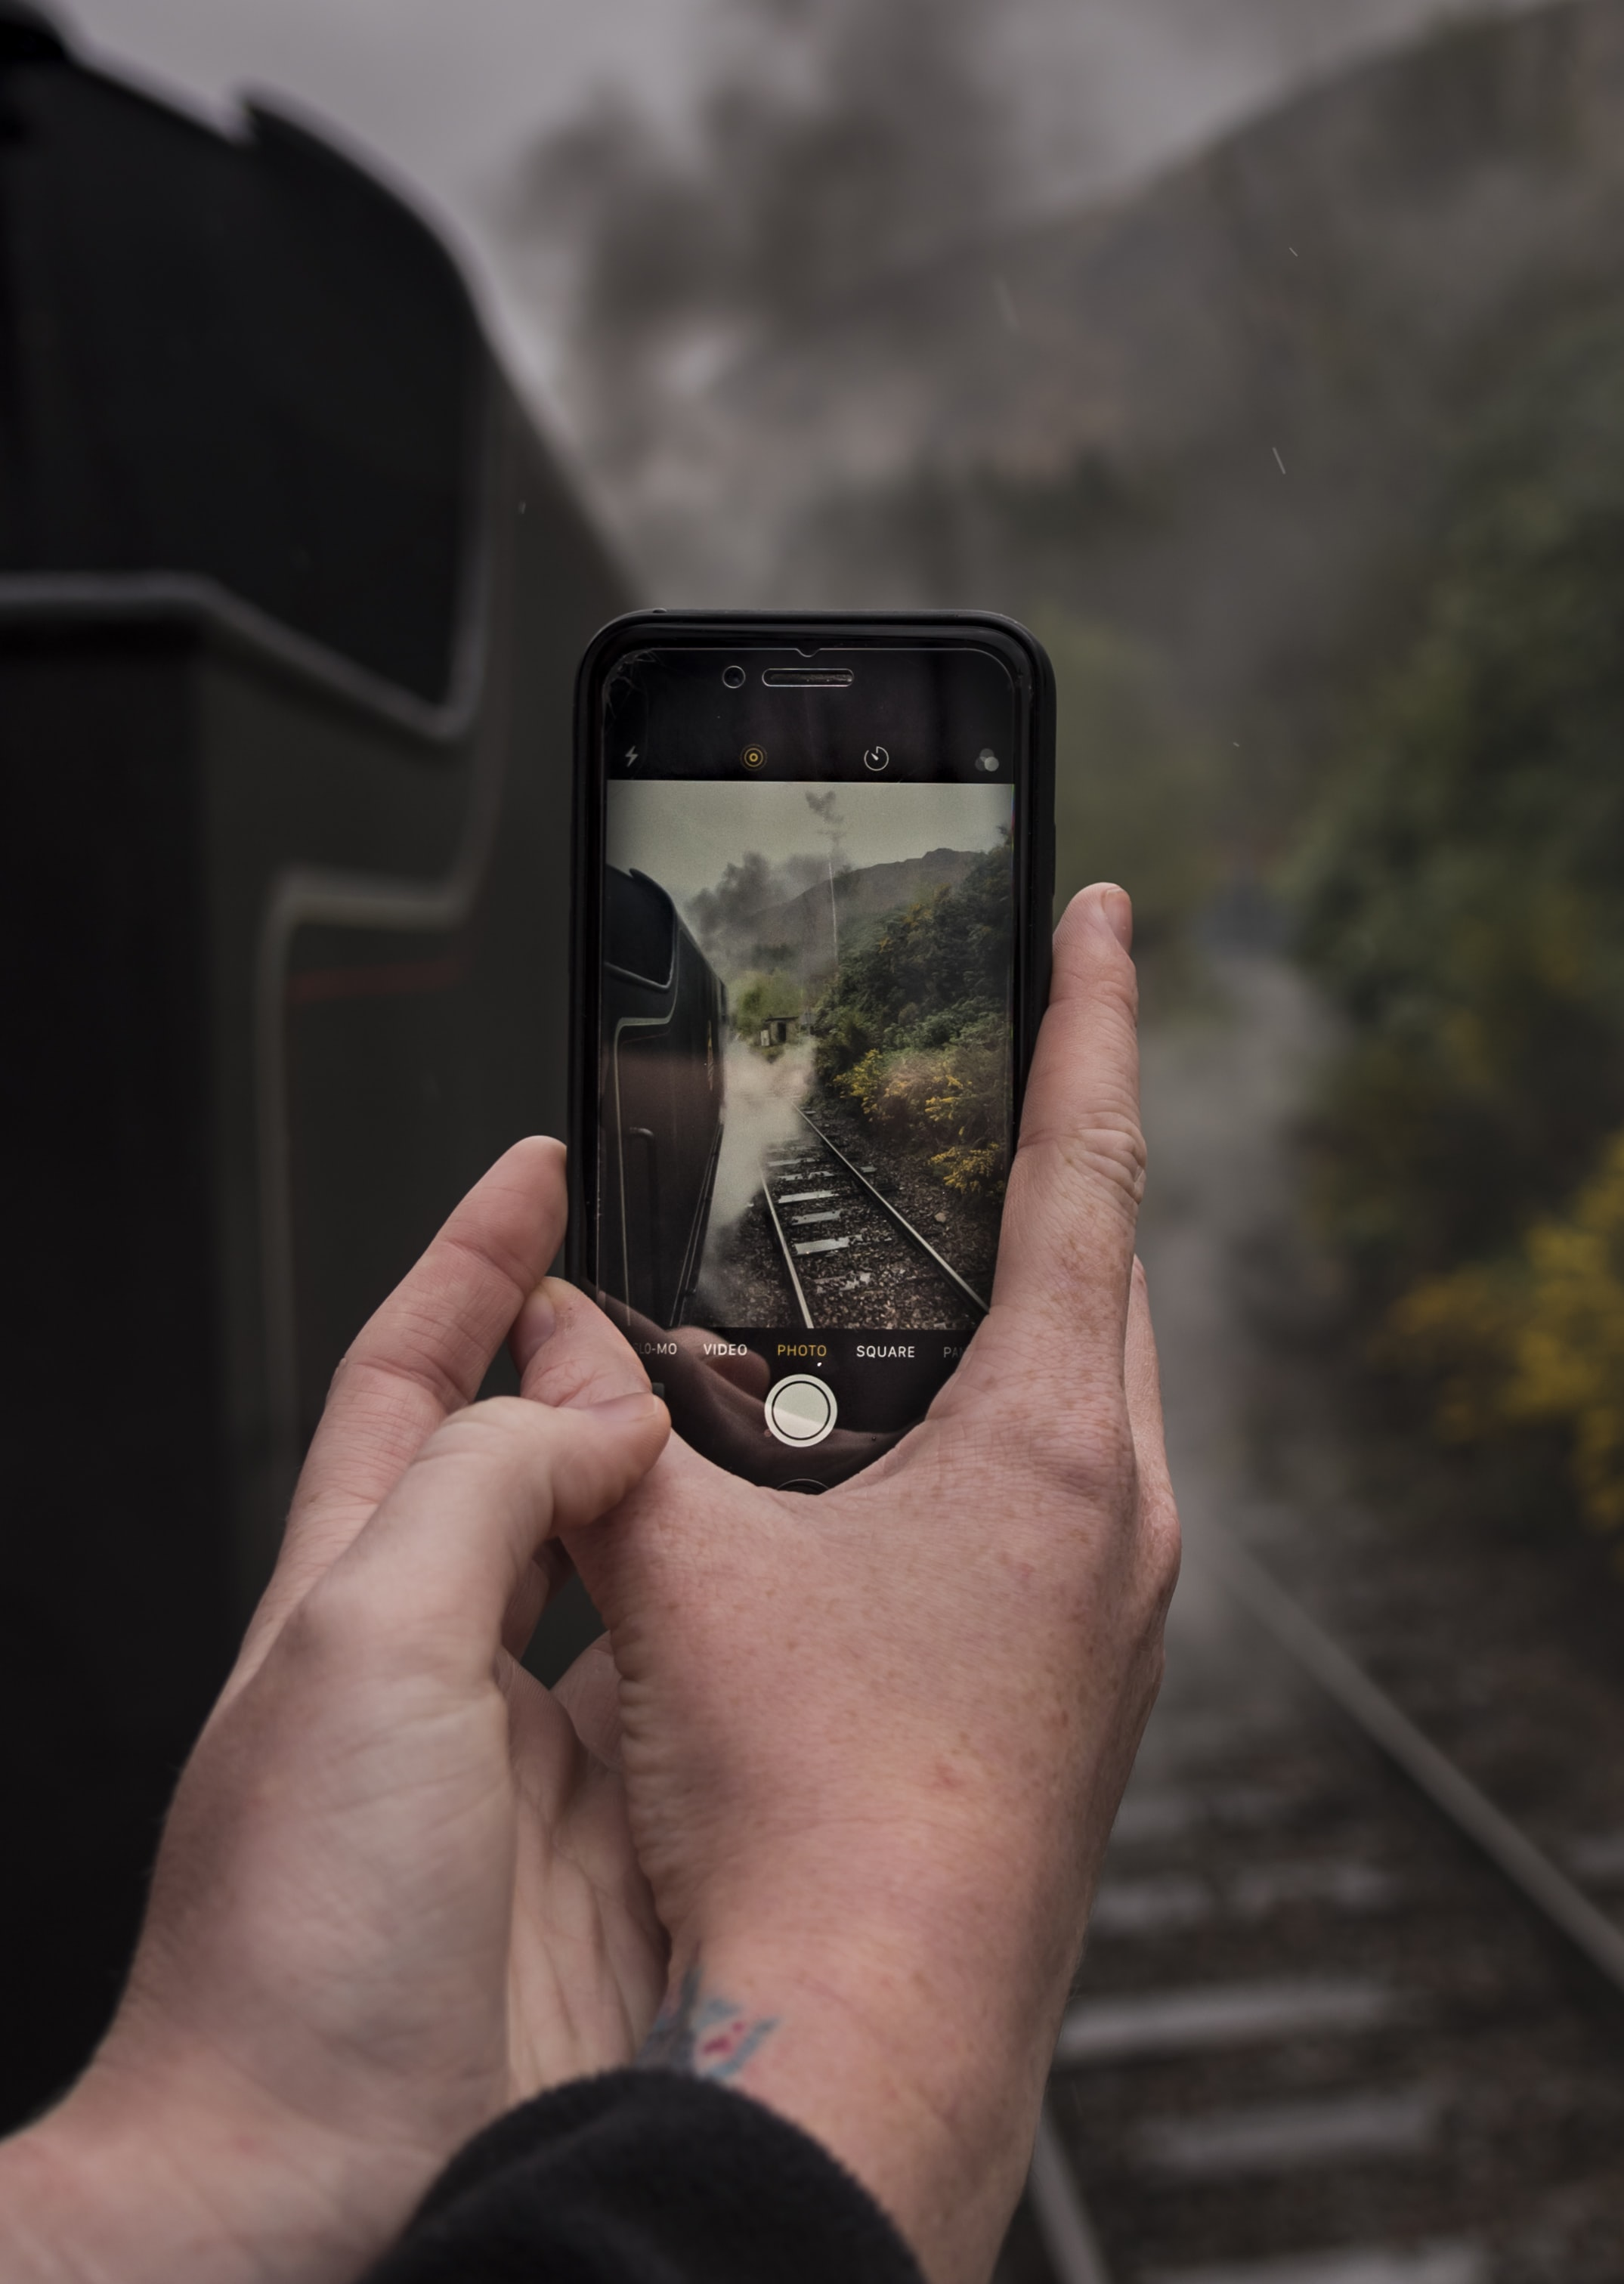 person taking photo of railway using iPhone